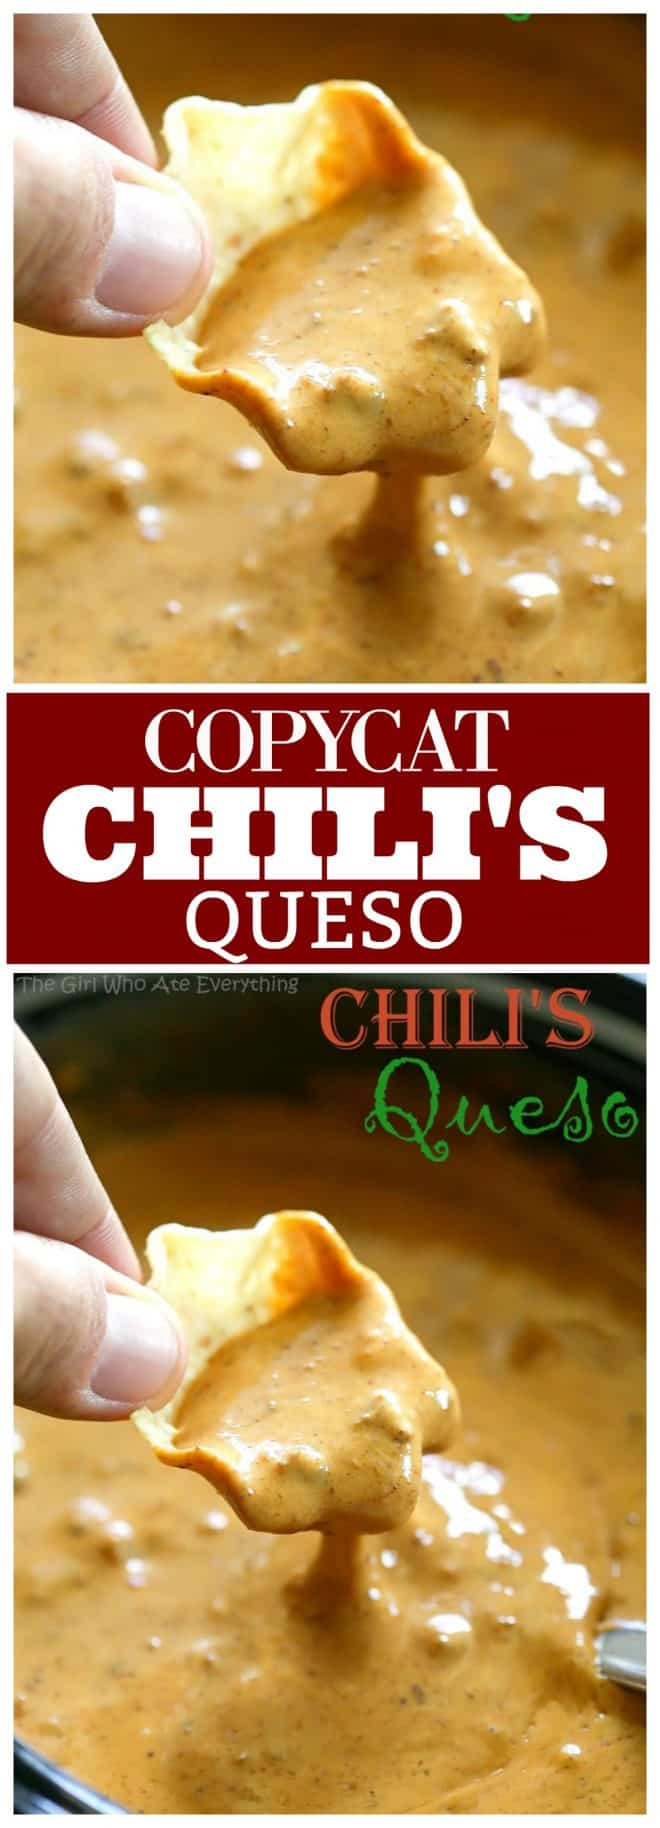 This is a copycat version of Chili's Queso Dip which is one of my family's favorites. Throw this Chili's Queso Dip together in the slow cooker or heat on the stove, either way it's a quick crowd pleasing appetizer. #chilis #queso #dip #appetizer #recipe #copycat